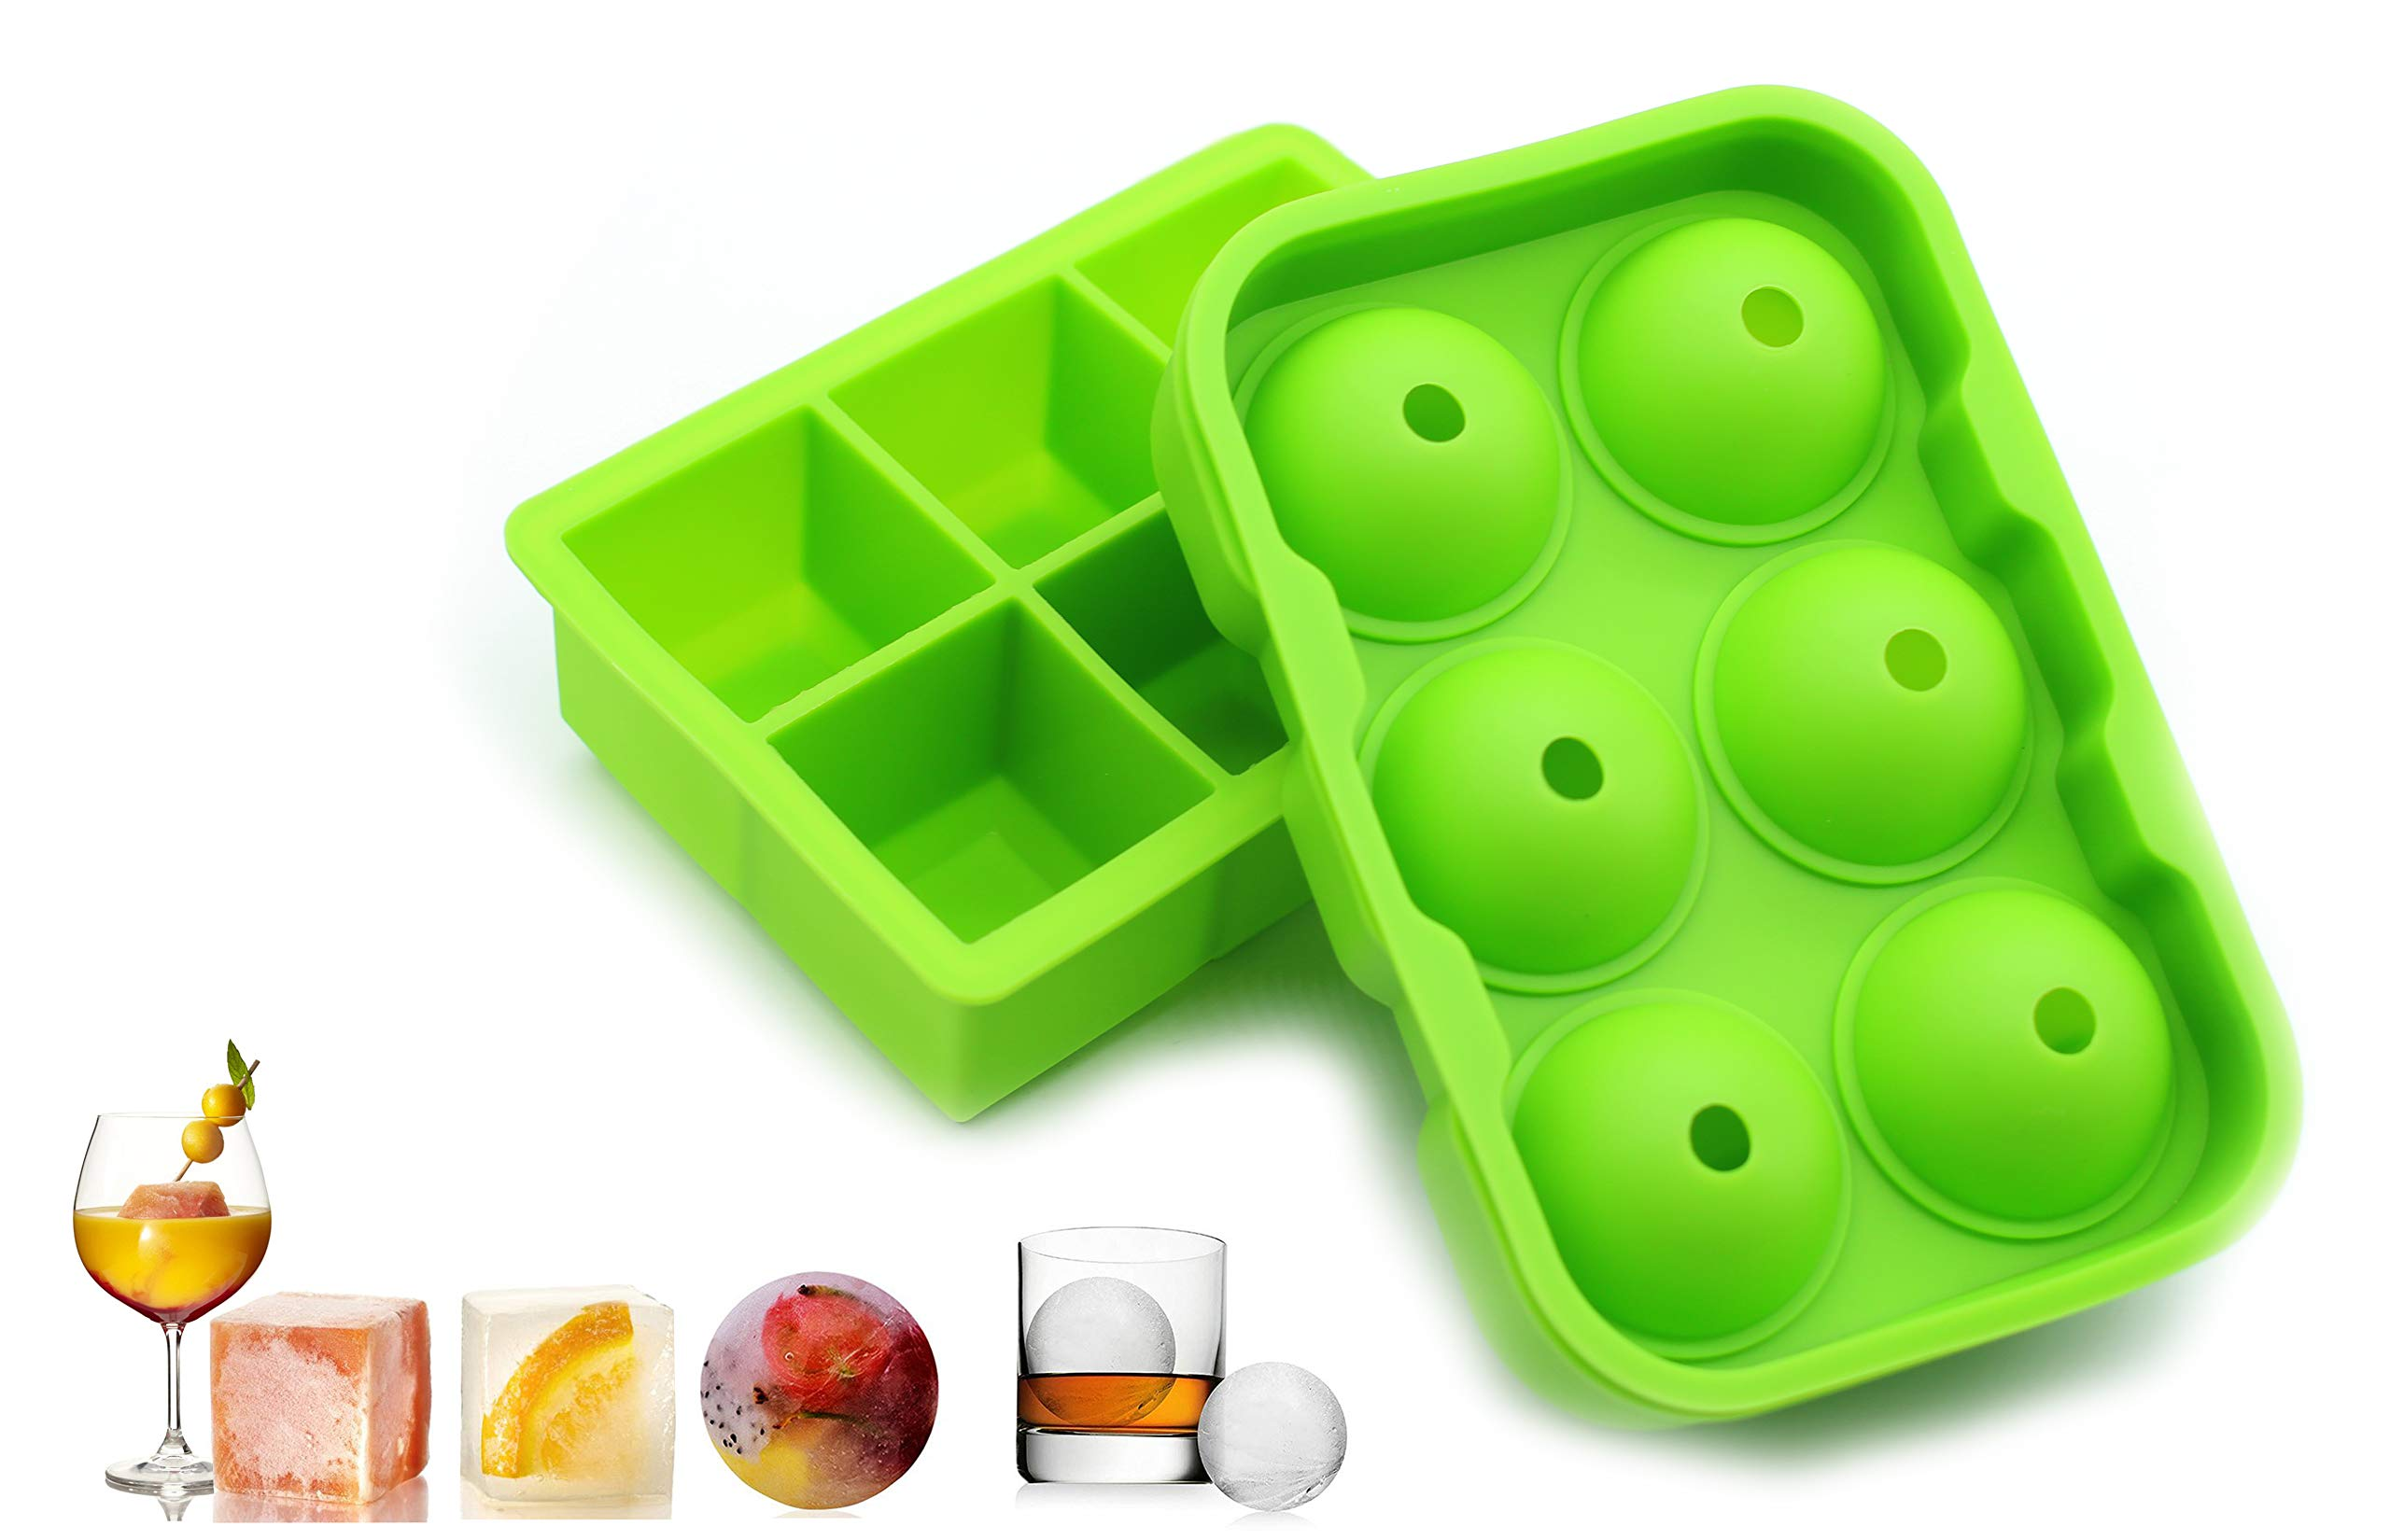 2 Pack Large Silicone Ice Cube Trays Molds, Square and Round Ball Ice Maker, Flexible Easy Release Stackable Dishwasher Safe Ice Mold for Whiskey Cocktail Beverages Chilled Drink